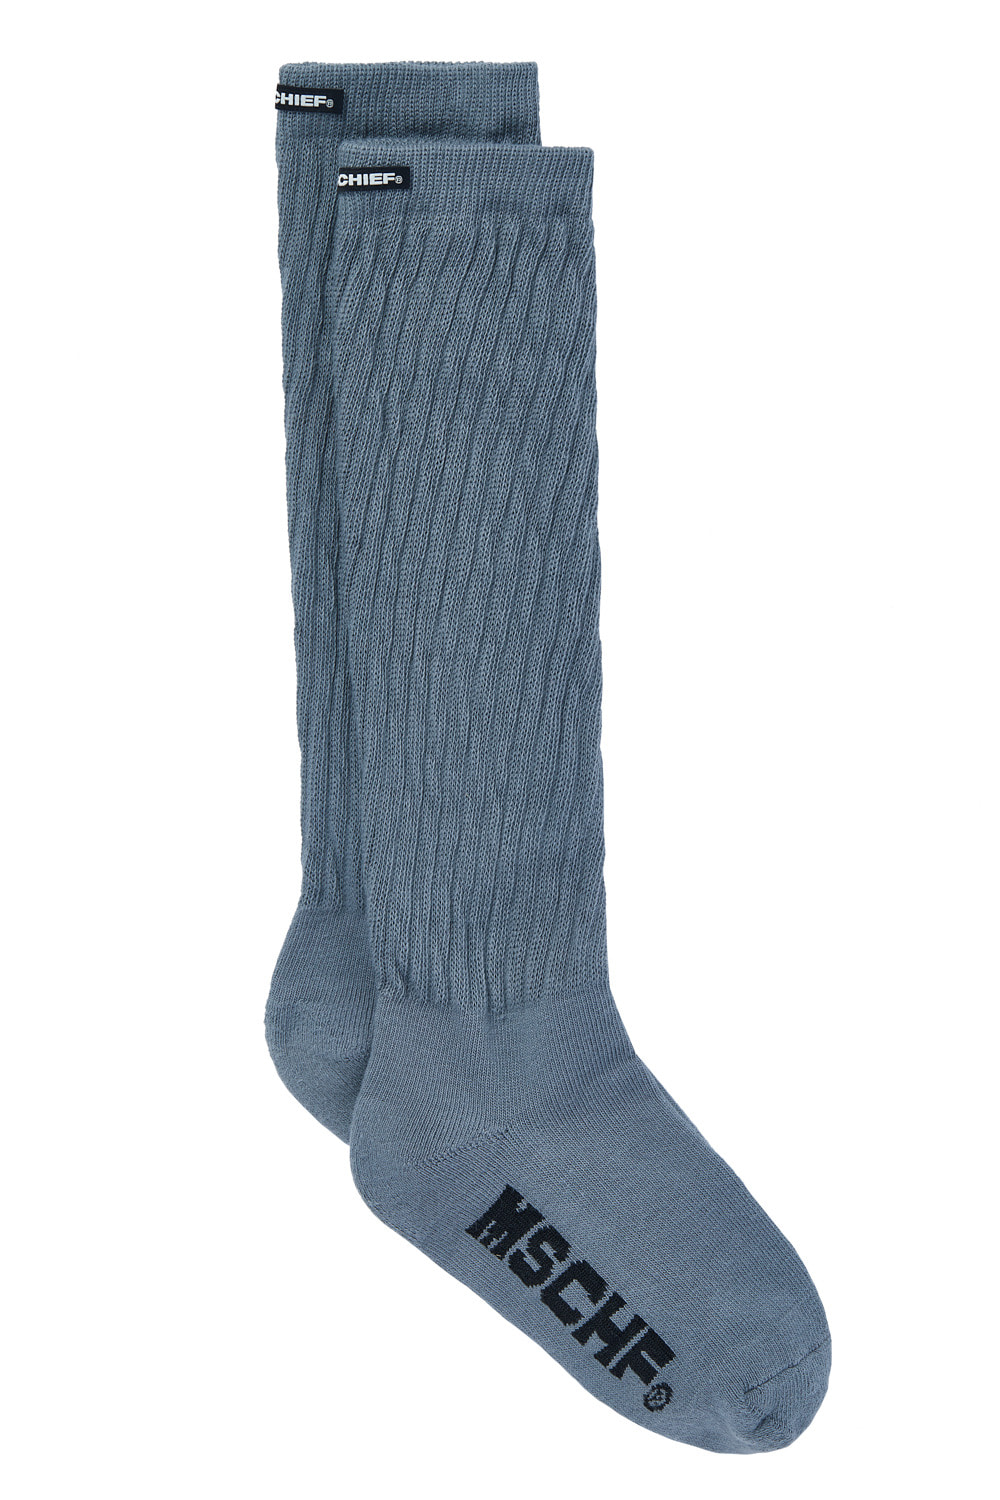 LONG MIDDLE TUBE SOCKS_gray